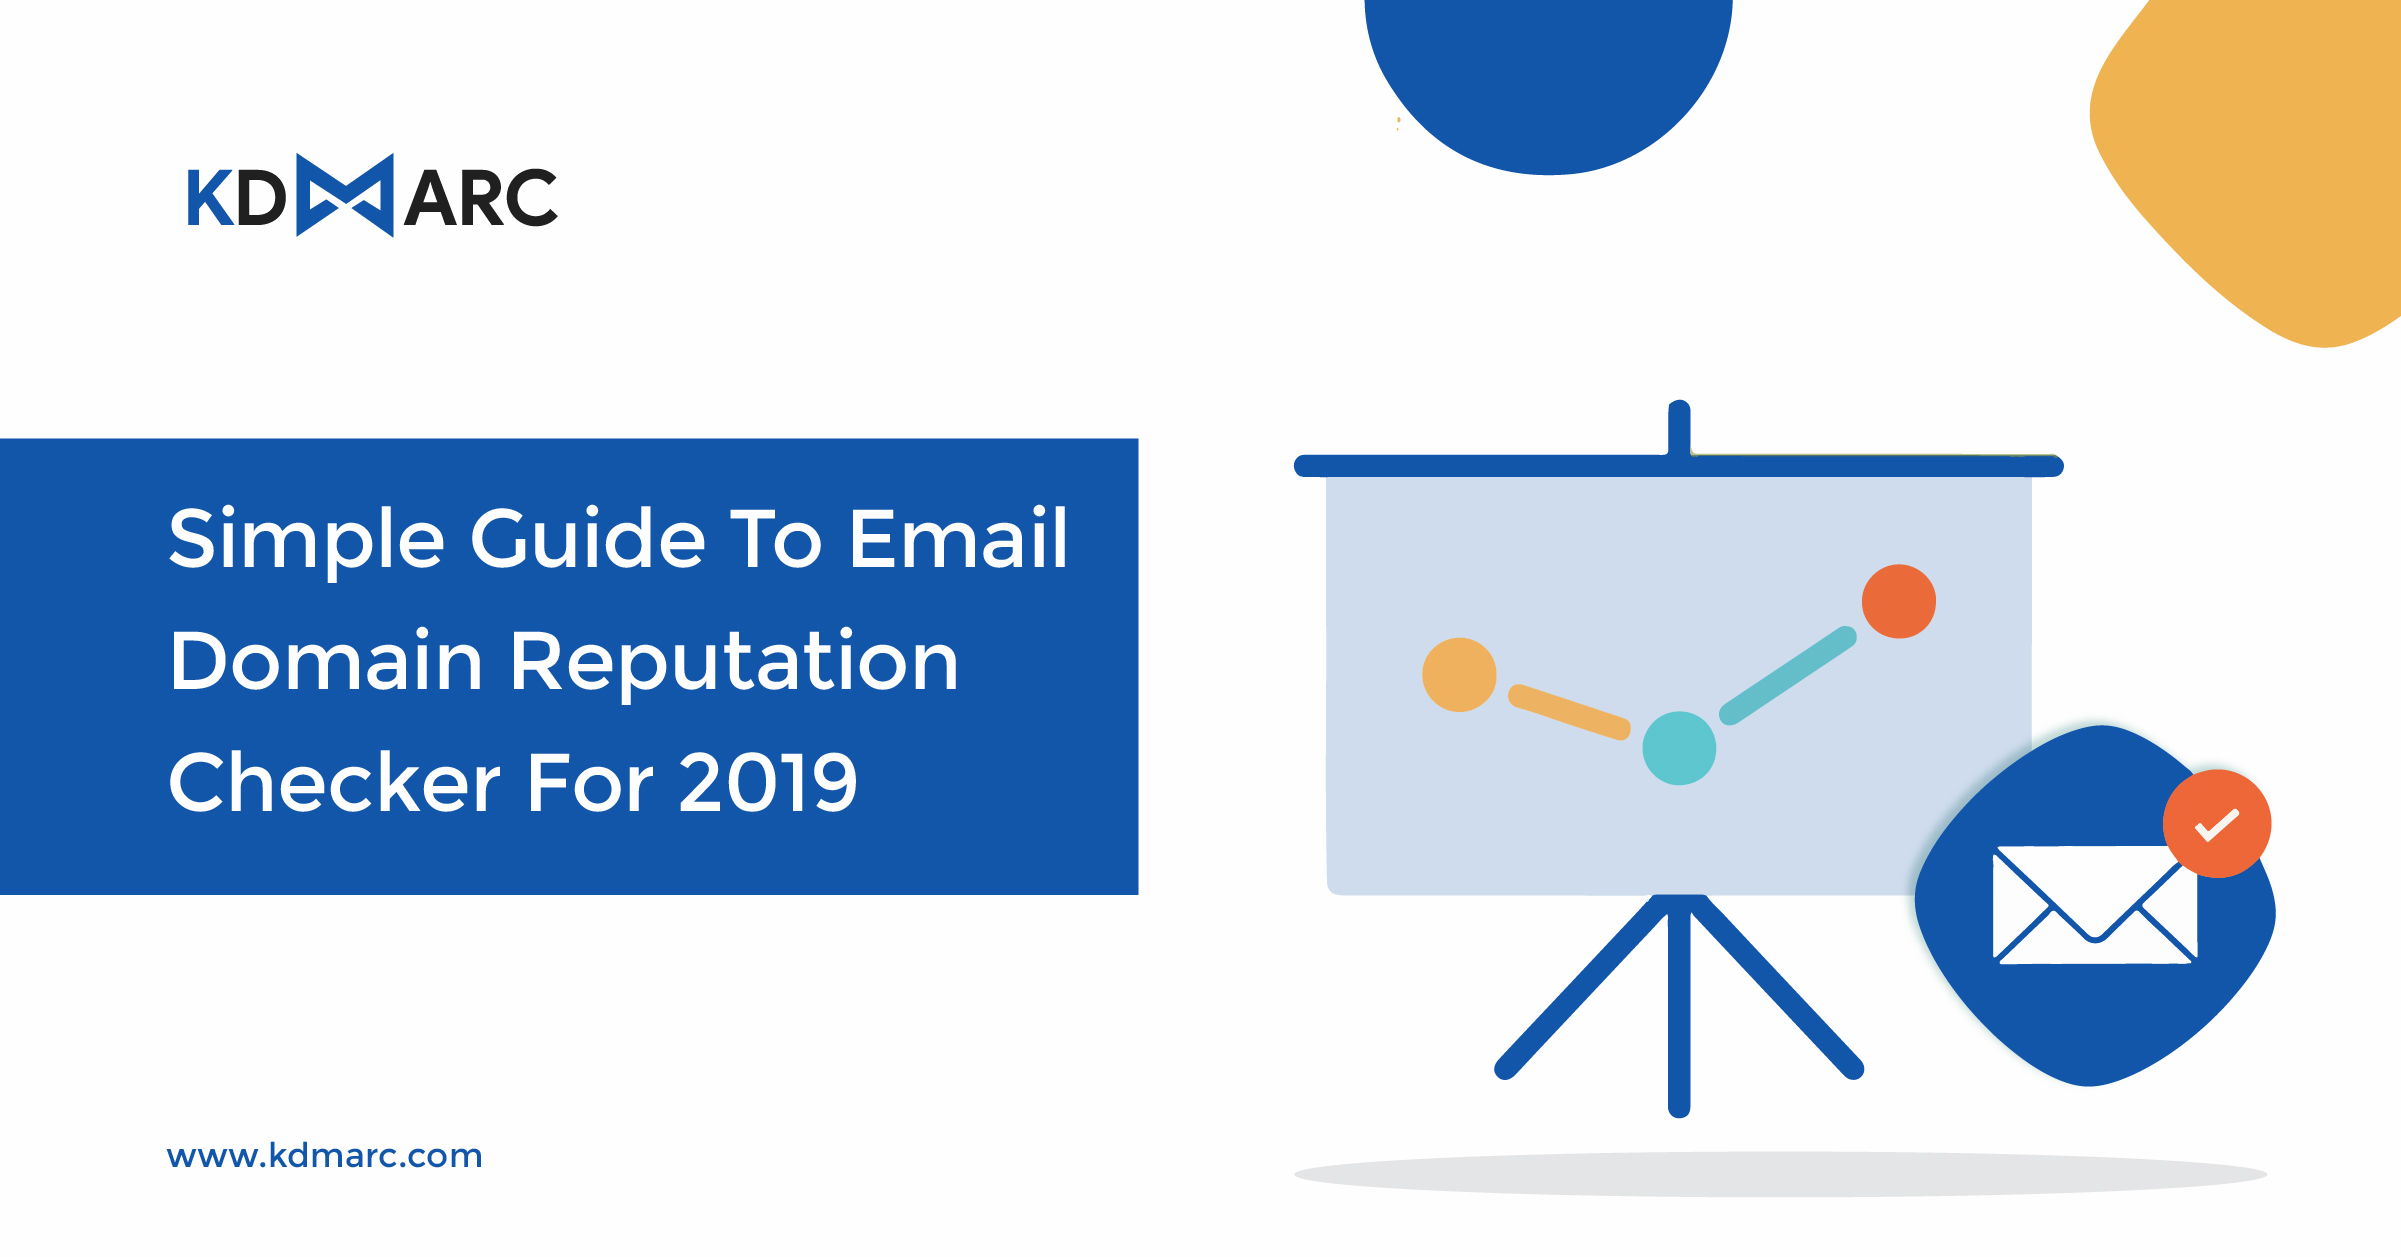 Simple Guide to Email Domain Reputation Checker for 2019